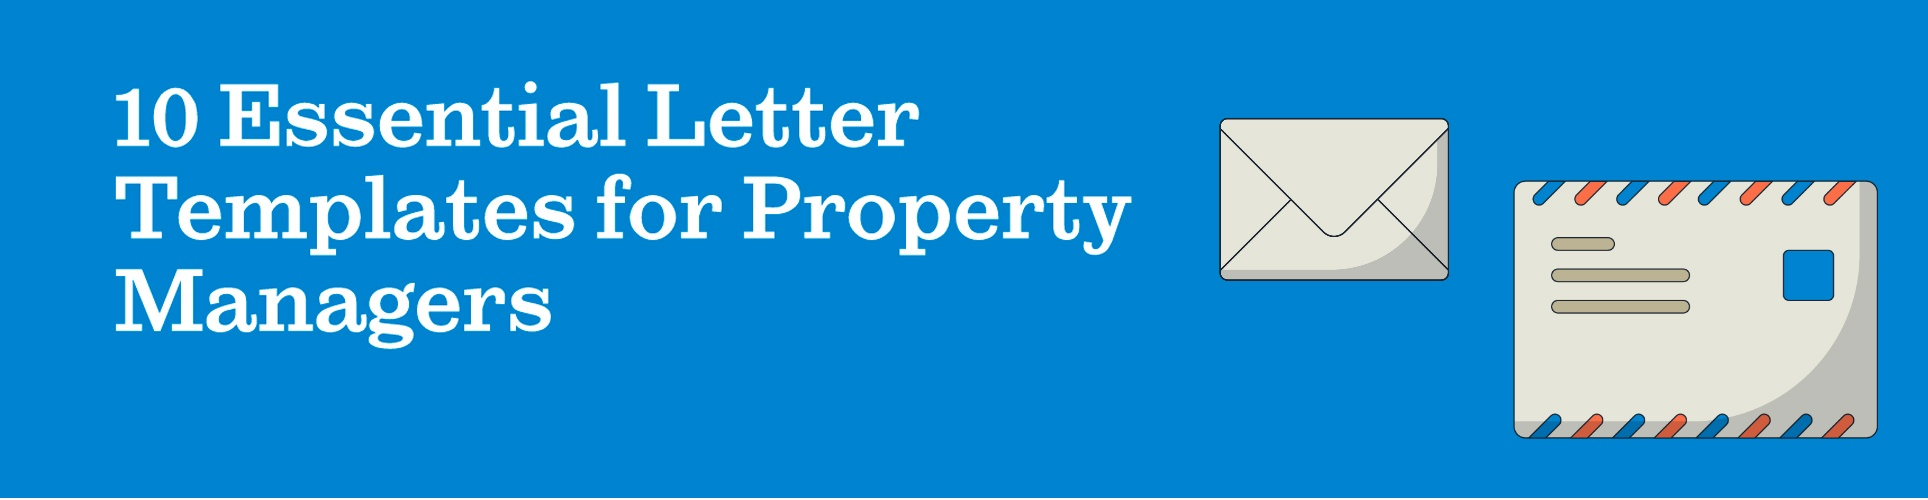 10-essential-letter-templates-for-property-managers.jpg